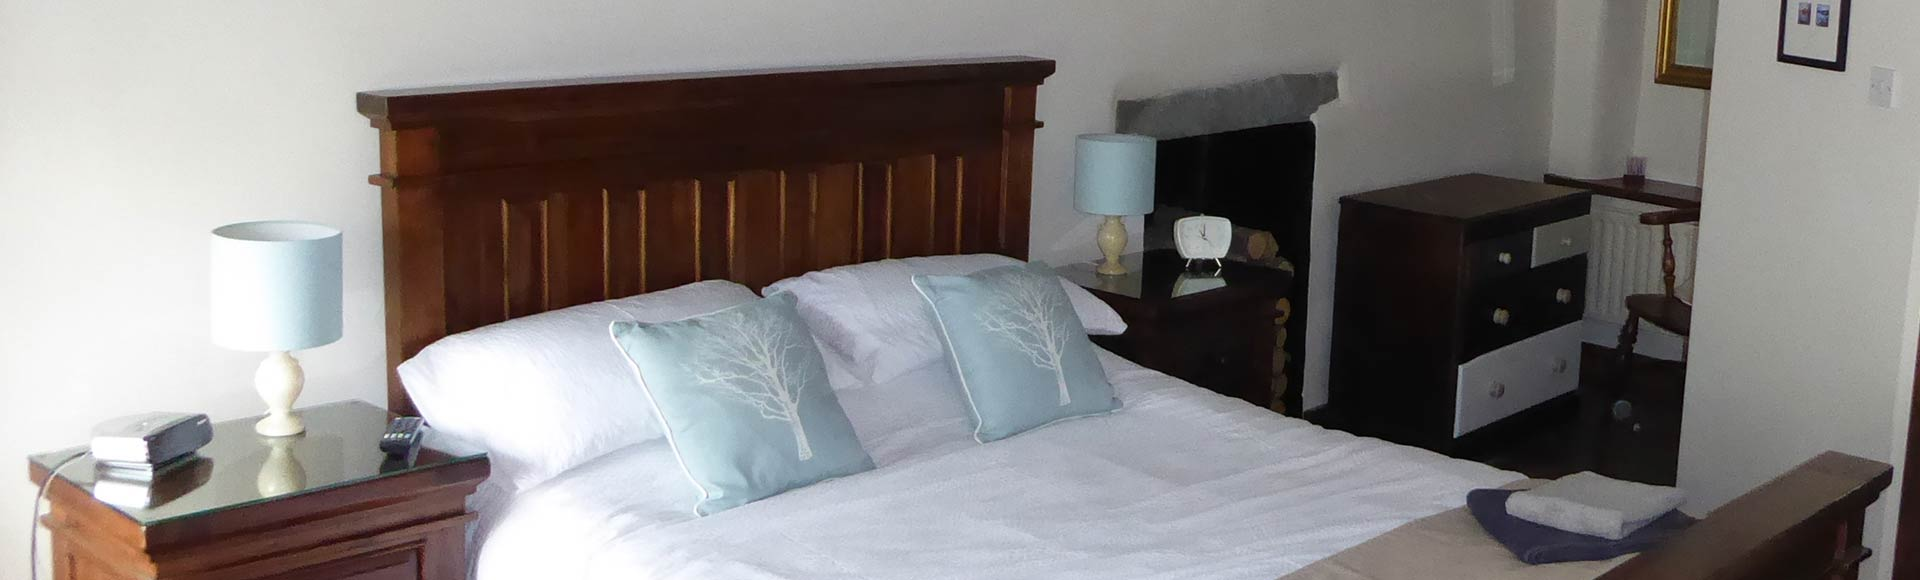 Double bedroom at Woolstore self-catering cottage